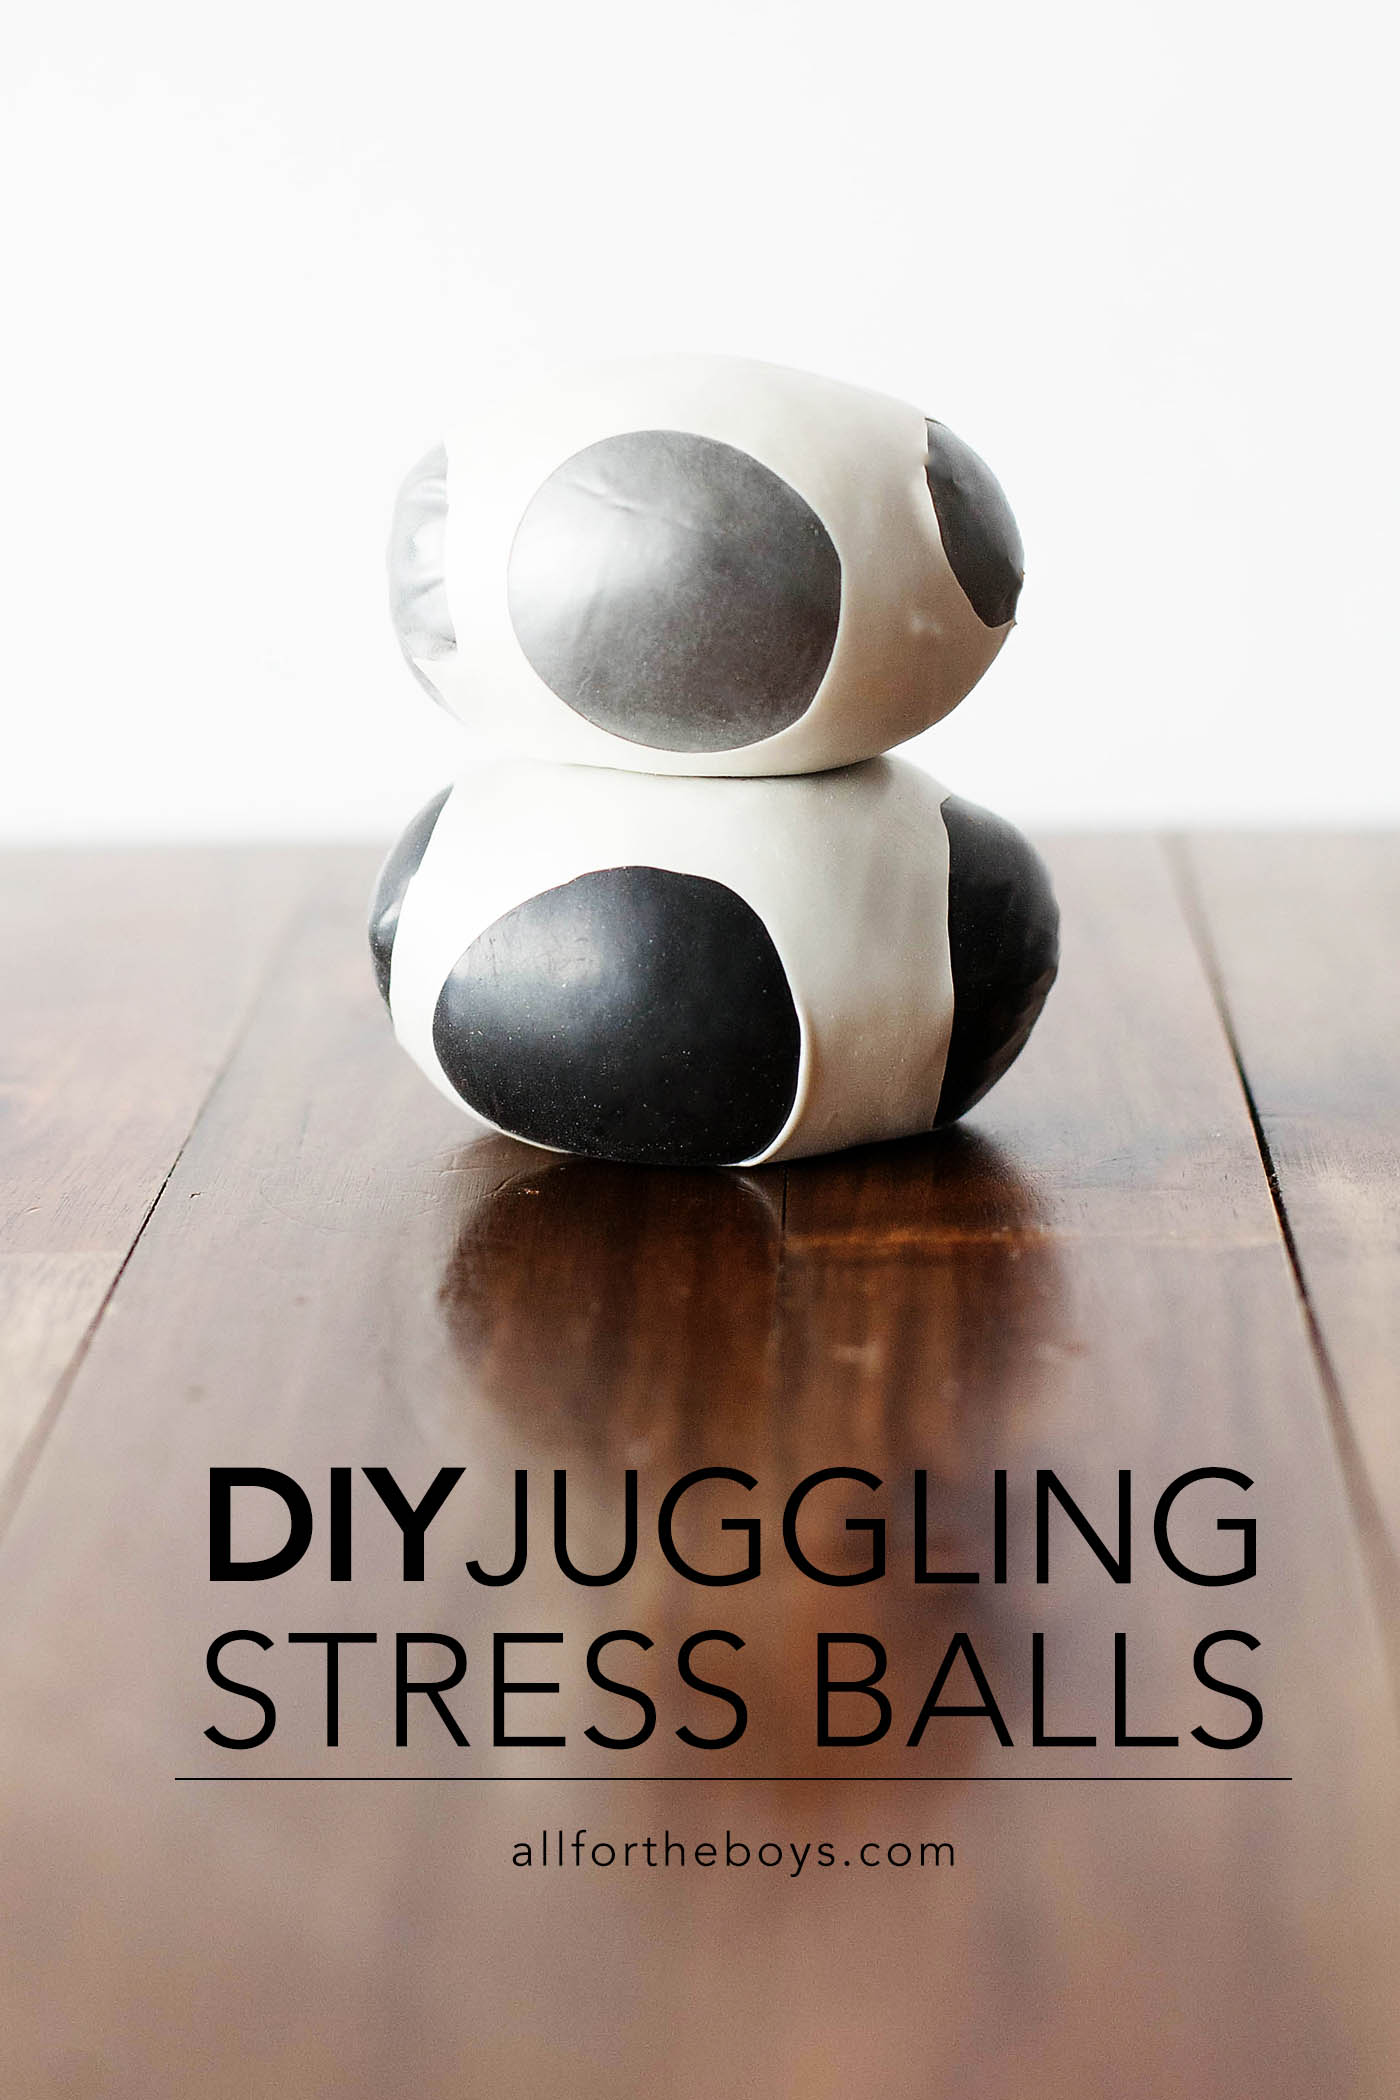 DIY juggling stress balls